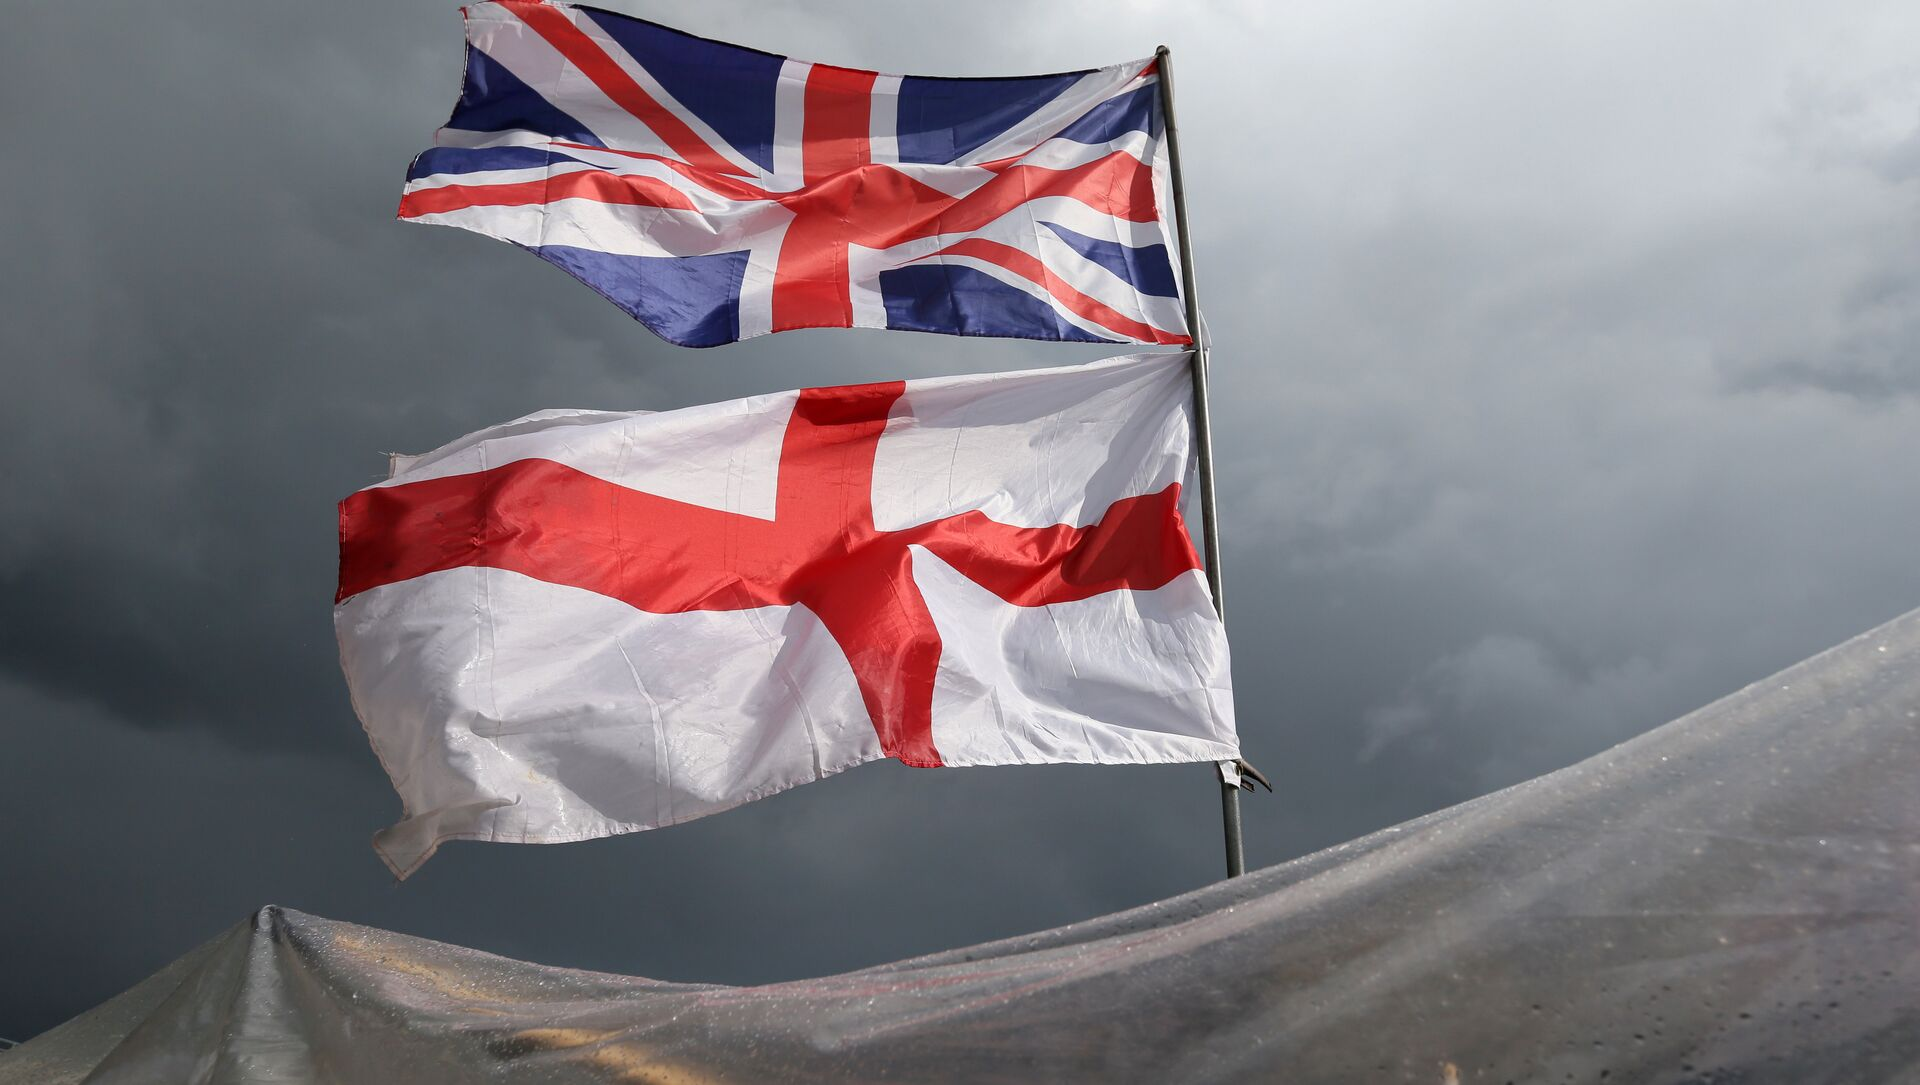 The flag of the United Kingdom of Great Britain and Northern Ireland, top, and the flag of England fly above a souvenir stand on Westminster Bridge following yesterday's EU referendum result, London, Saturday, June 25, 2016. Britain voted to leave the European Union after a bitterly divisive referendum campaign. - Sputnik Mundo, 1920, 09.02.2021